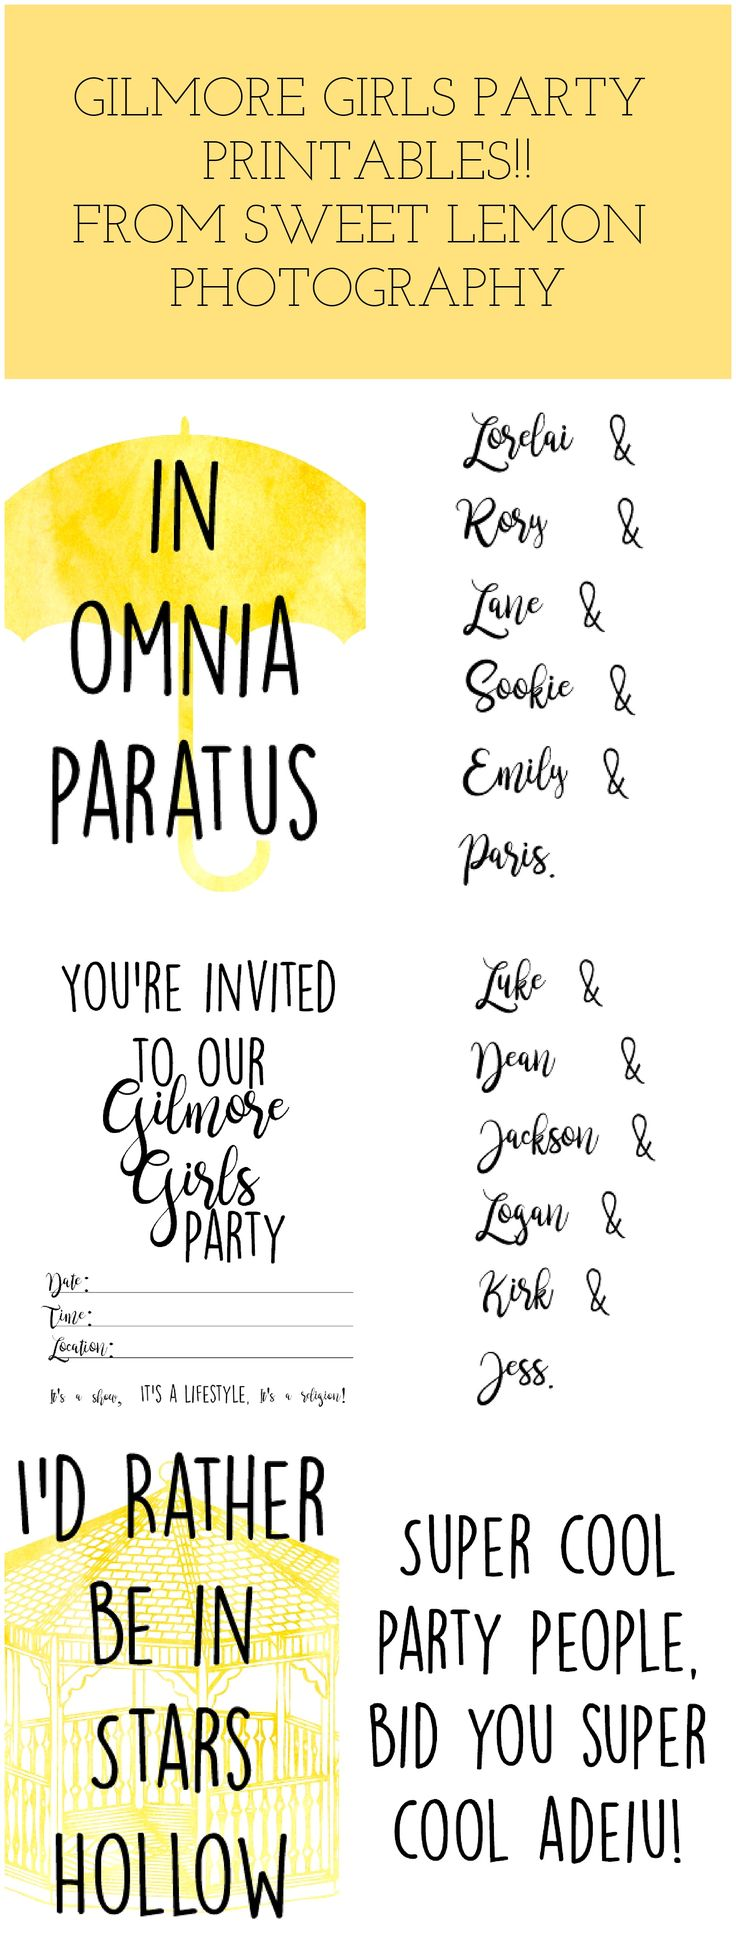 Gilmore Girls Party Invitations and home Printables! I'd rather be in Stars Hollow In Omnia Paratus